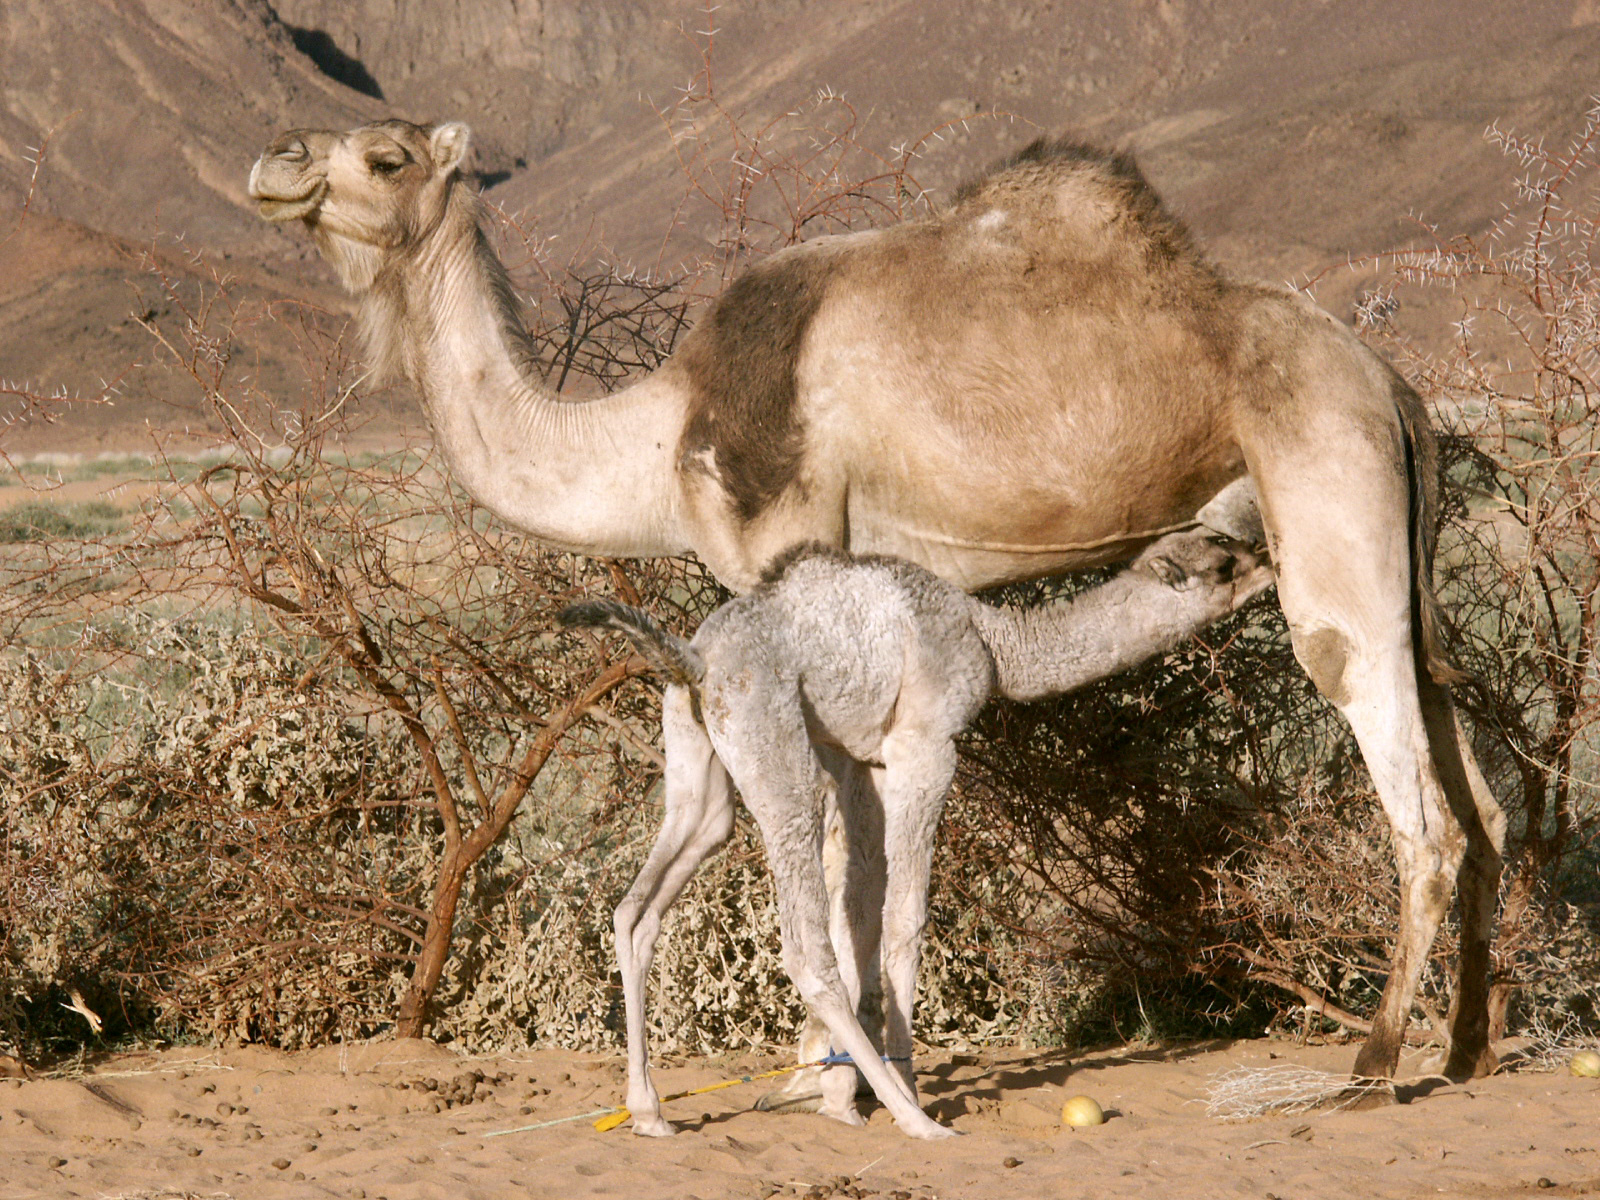 http://upload.wikimedia.org/wikipedia/commons/9/9e/Camelcalf-feeding.jpg